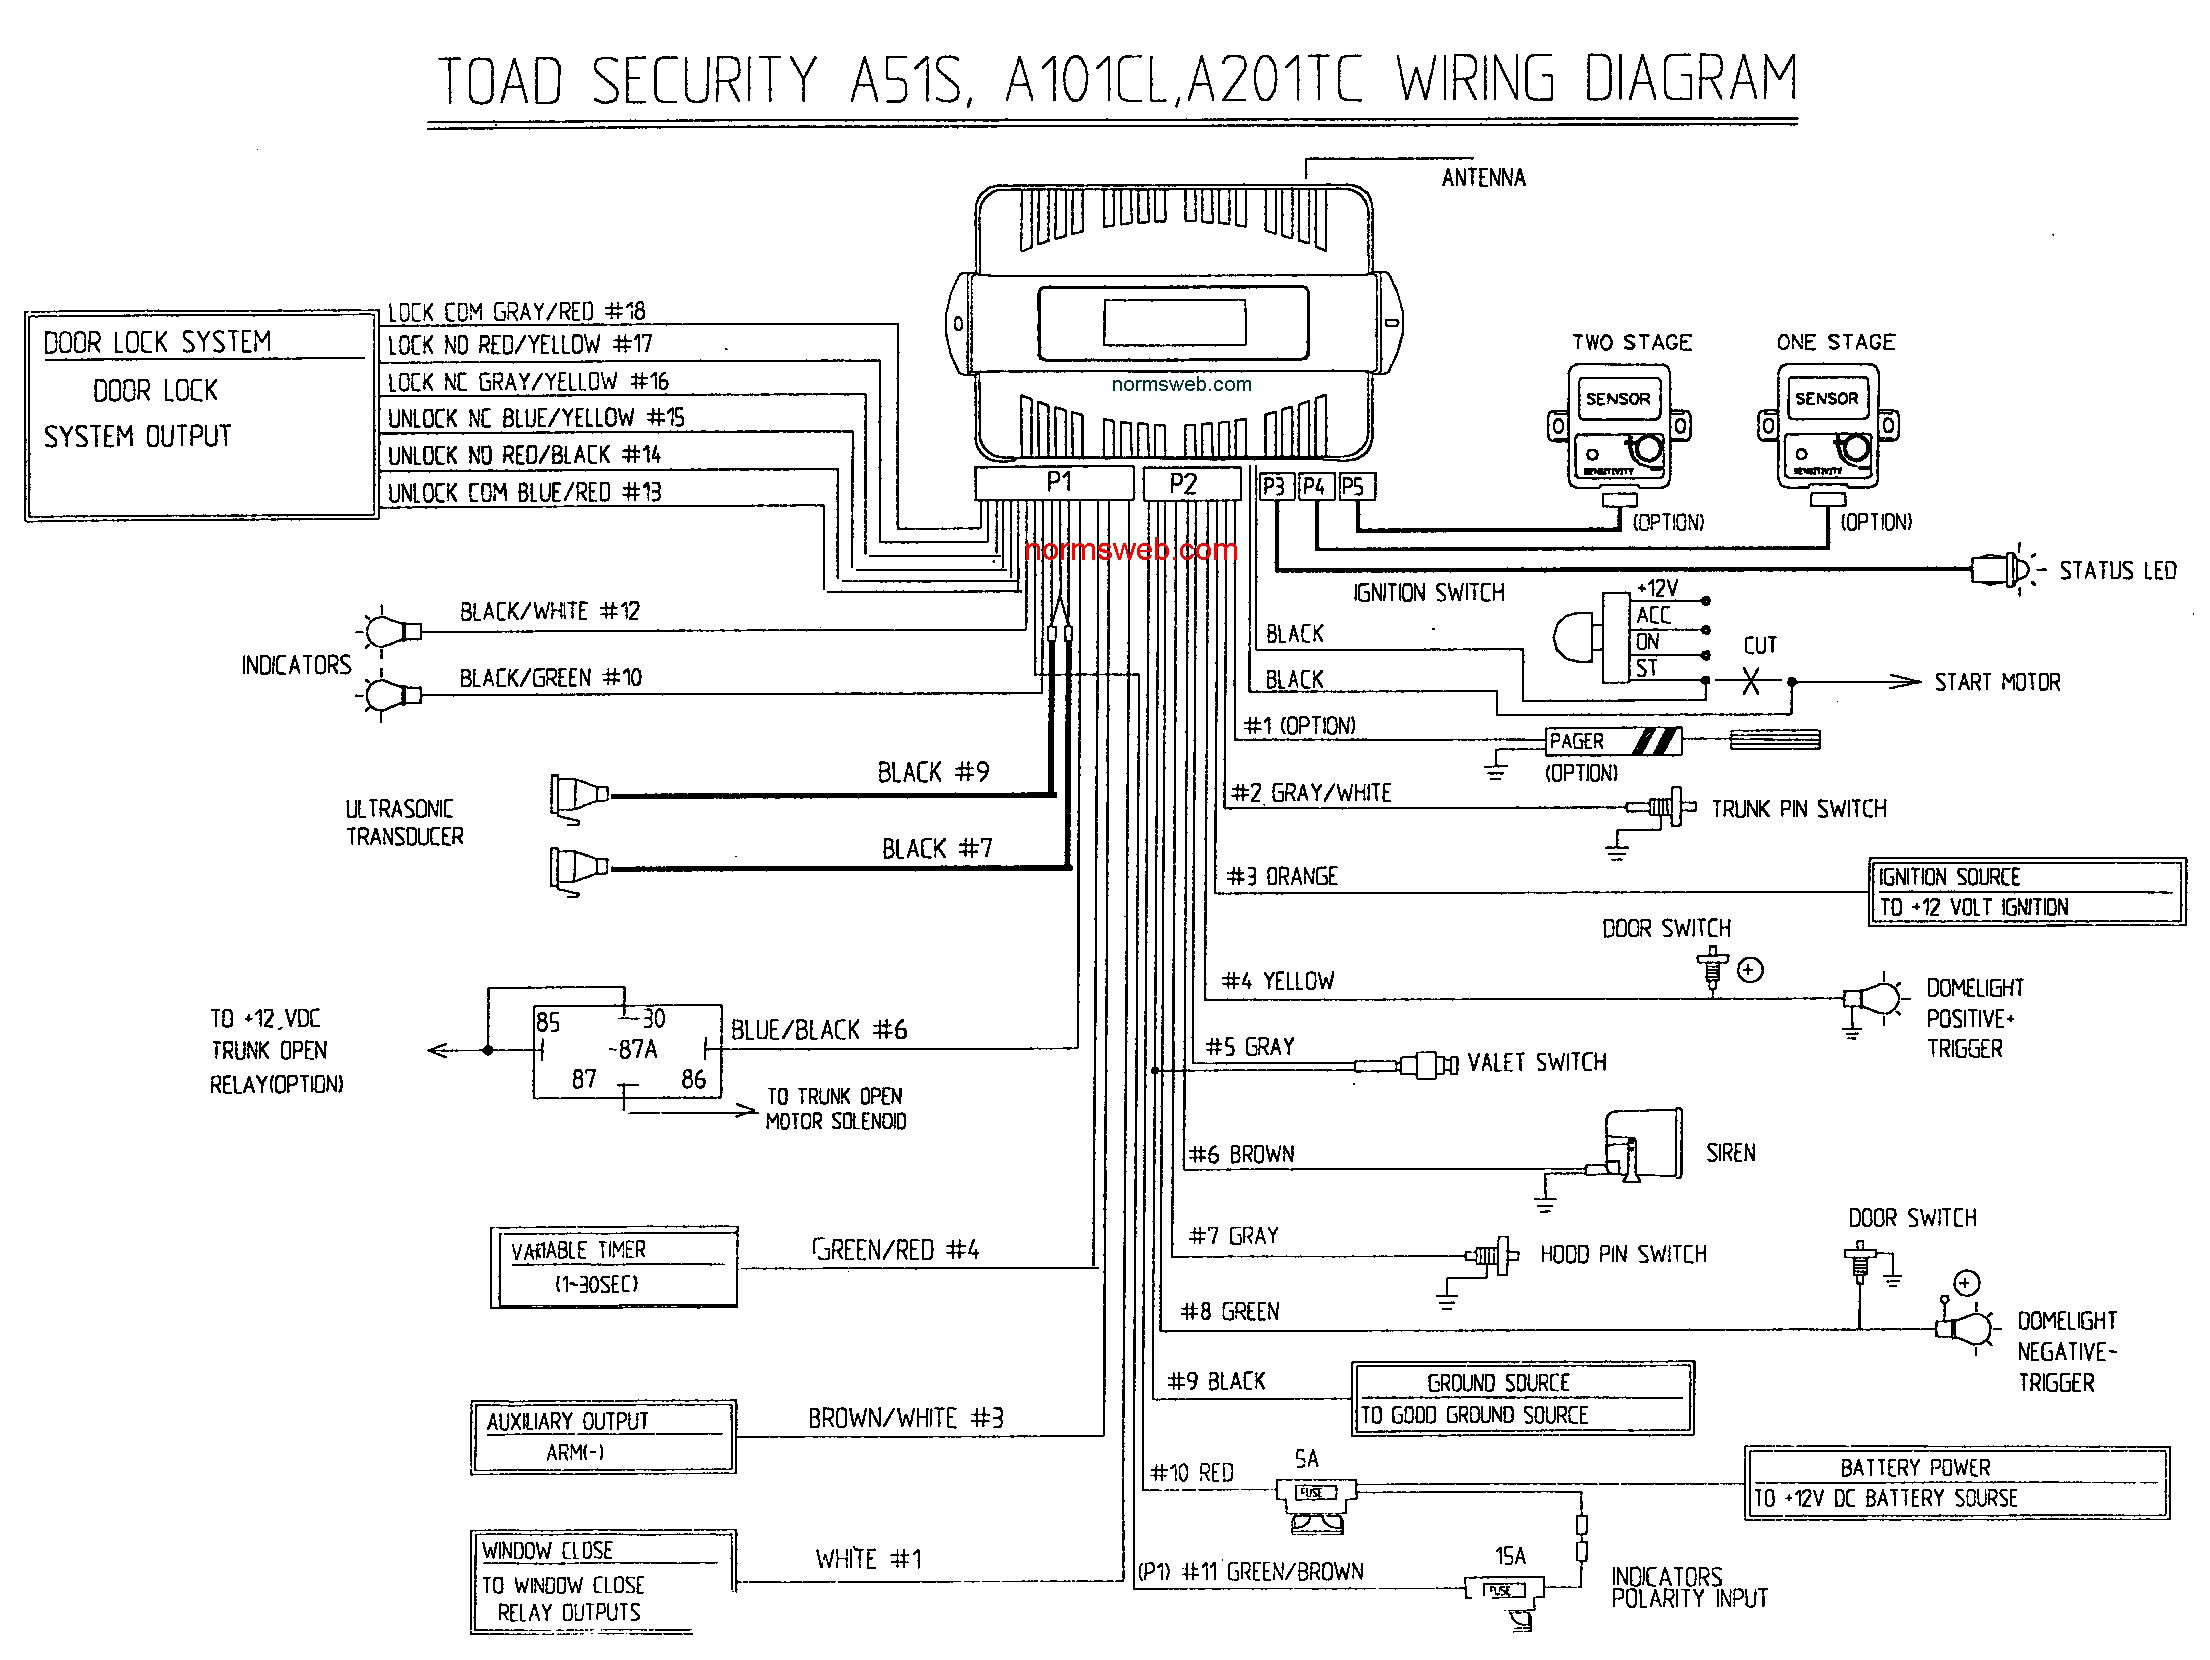 DIAGRAM] 556u Viper Alarm Cables Diagram FULL Version HD Quality Cables  Diagram - WEBUMLDIAGRAMS.BELEN-RODRIGUEZ.ITbelen-rodriguez.it